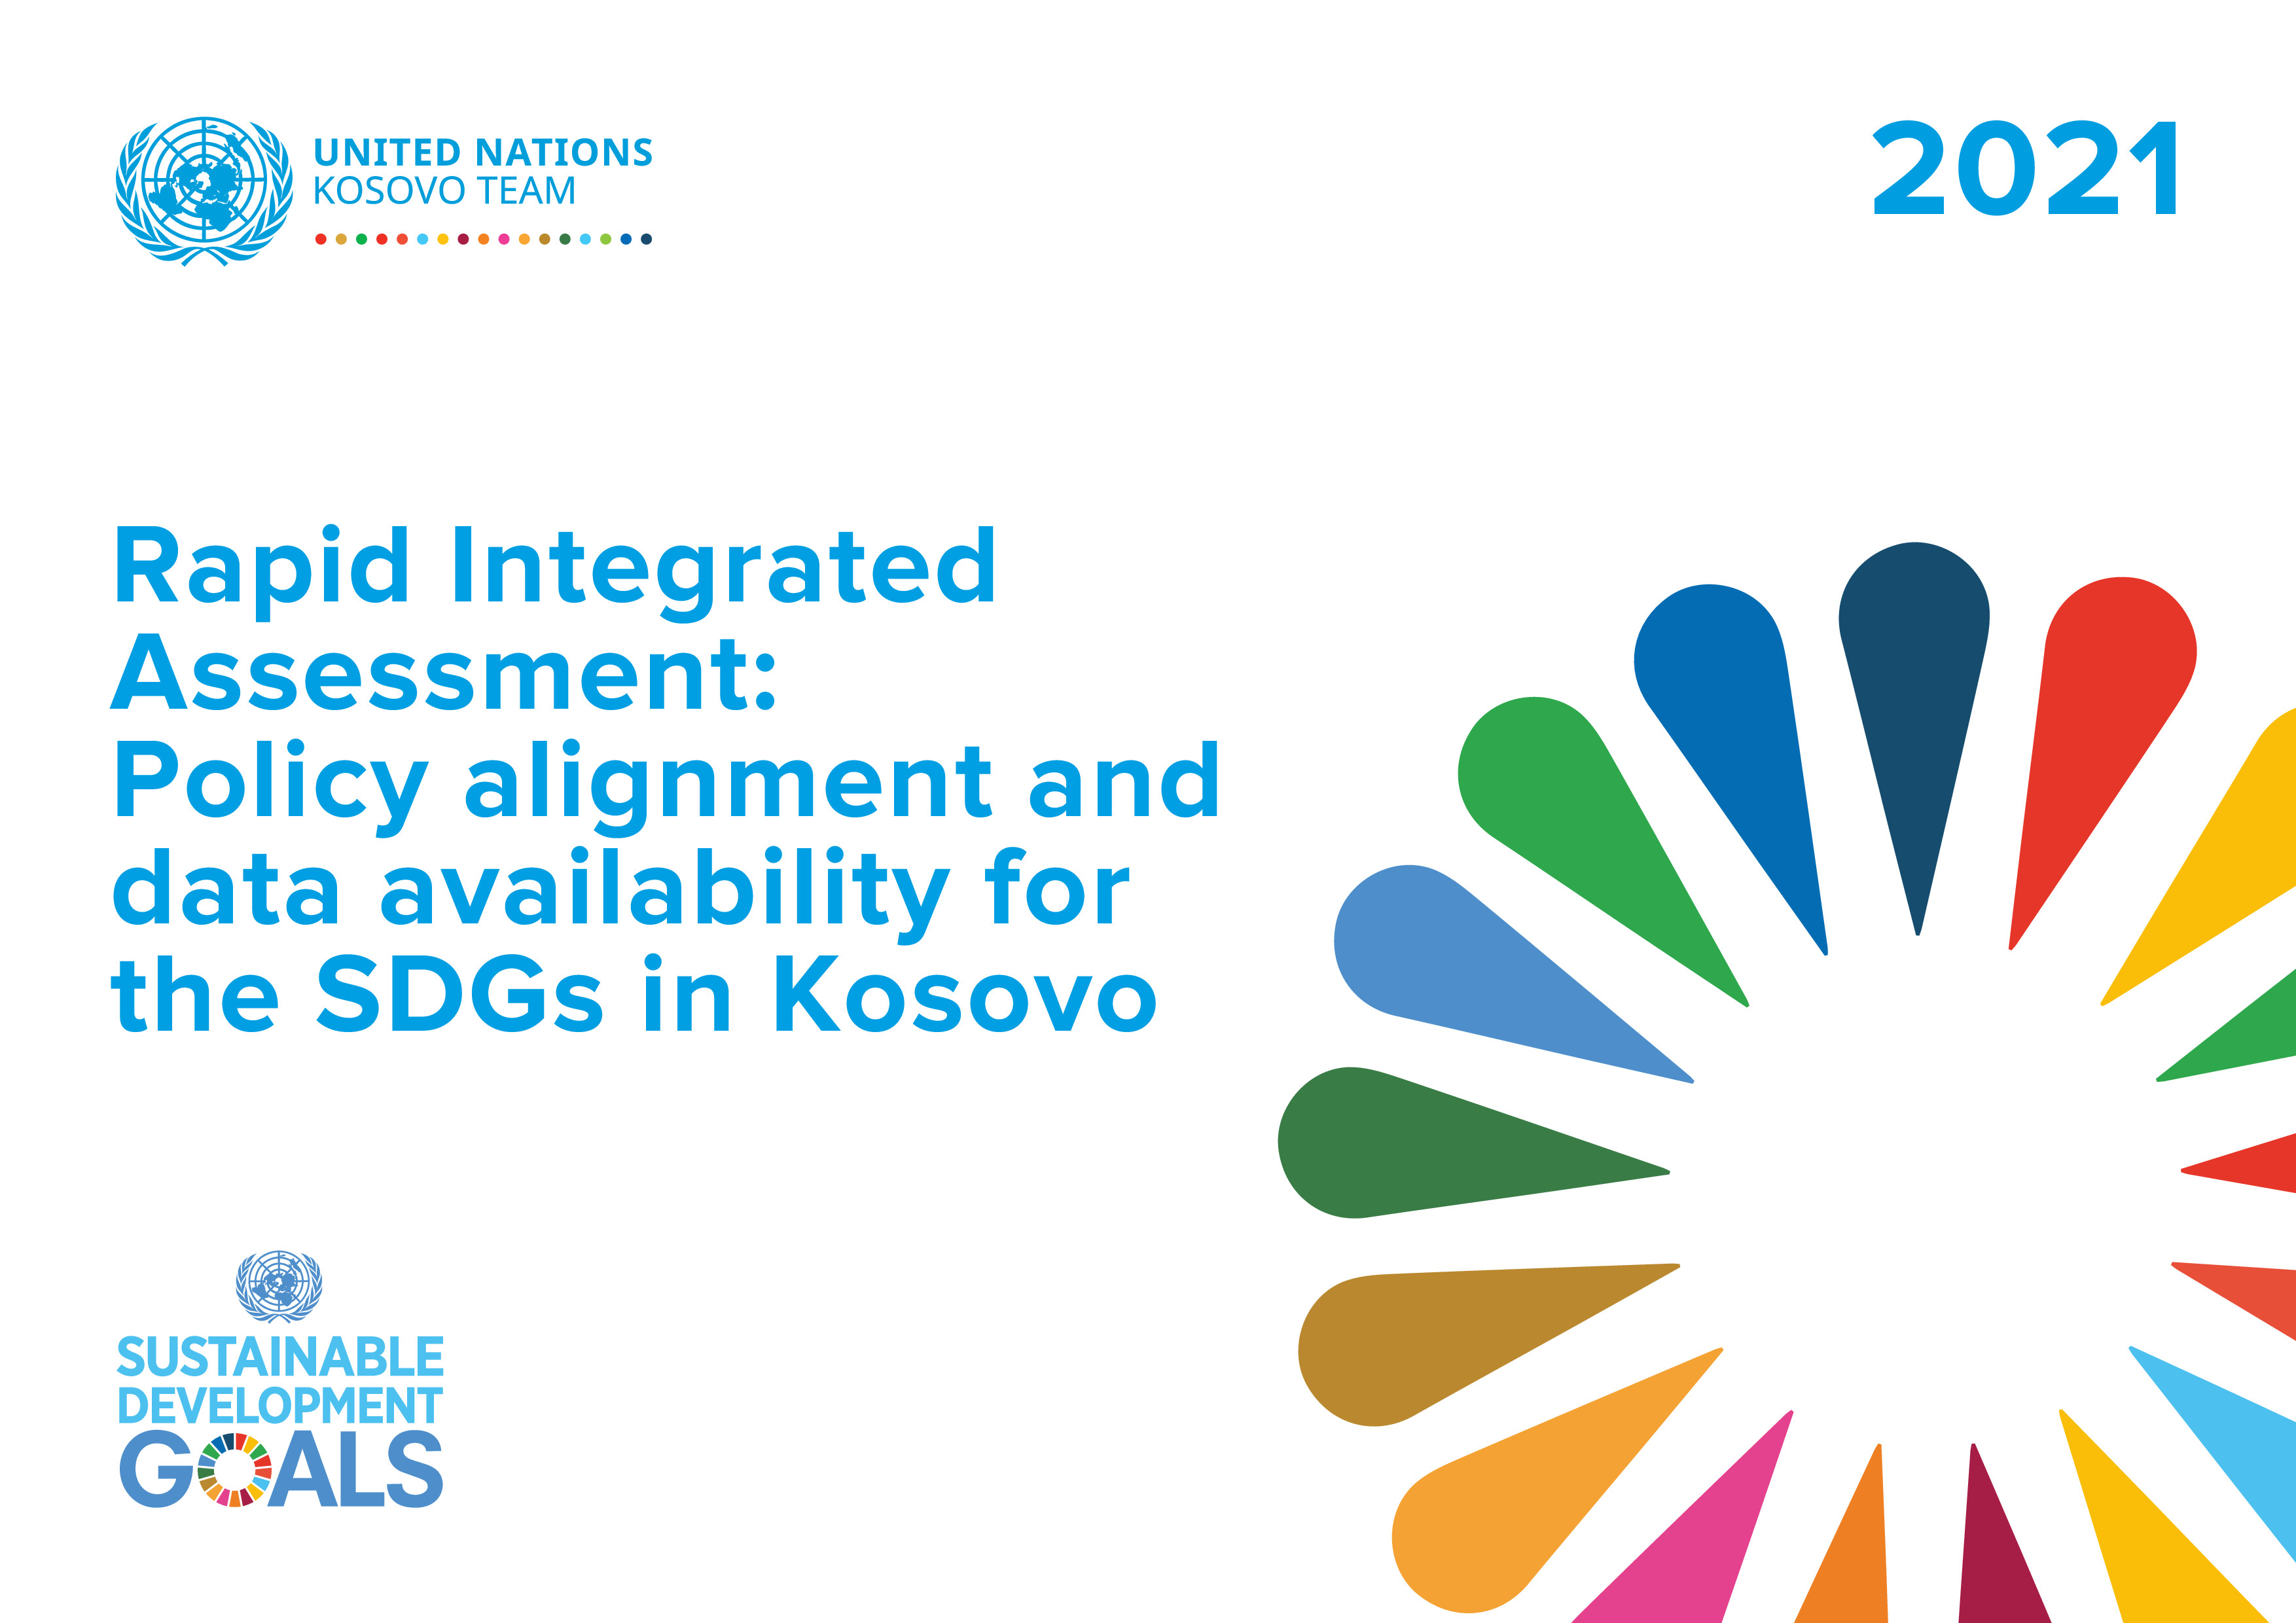 Rapid Integrated Assessment: Policy Alignment and Data Availability for the SDGs in Kosovo